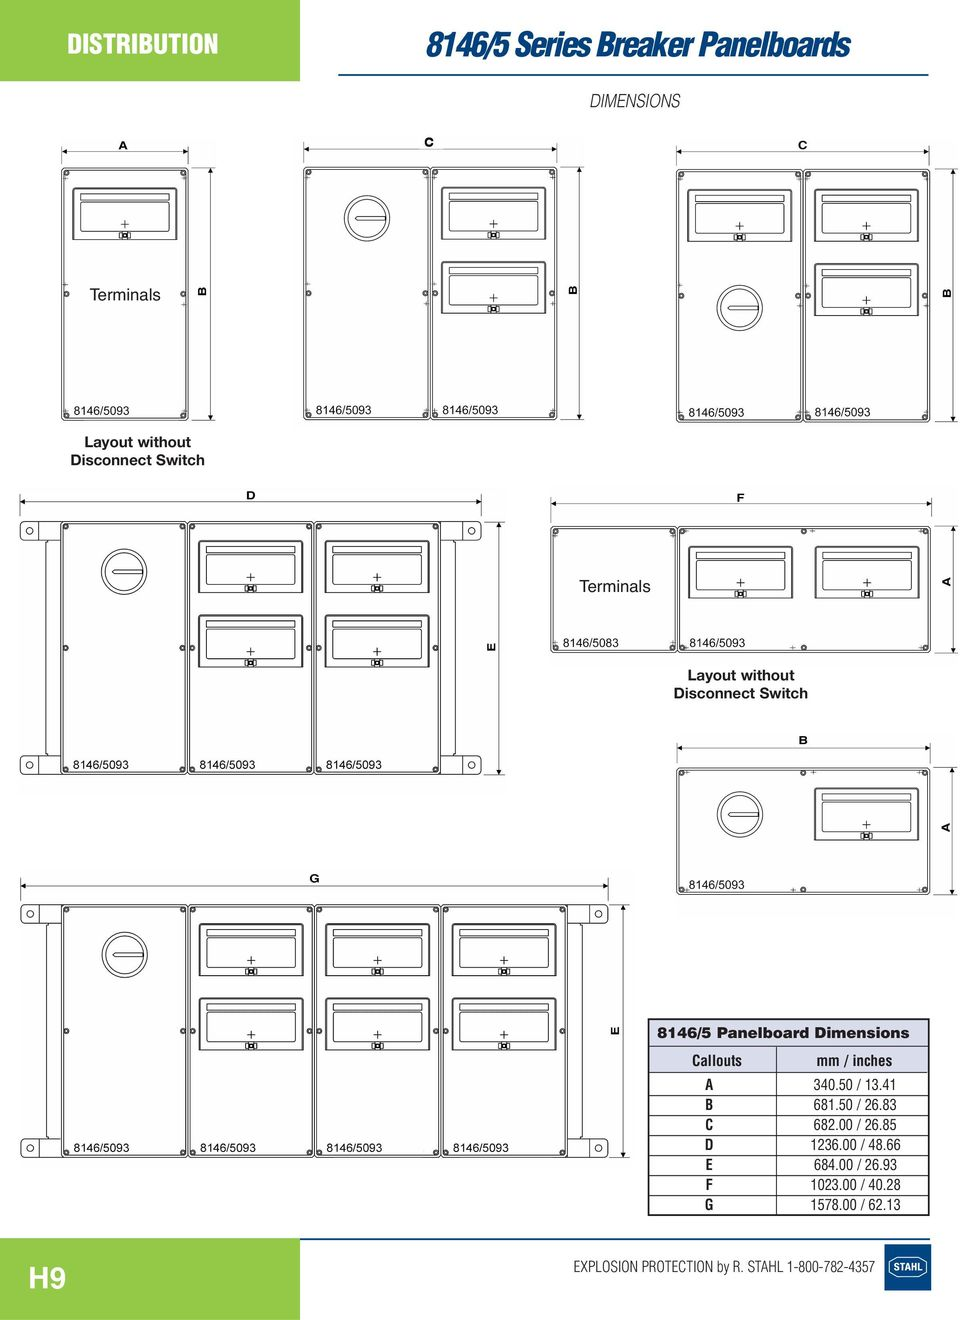 Panelboard Dimensions Callouts mm / inches A 340.50 / 13.41 B 681.50 / 26.